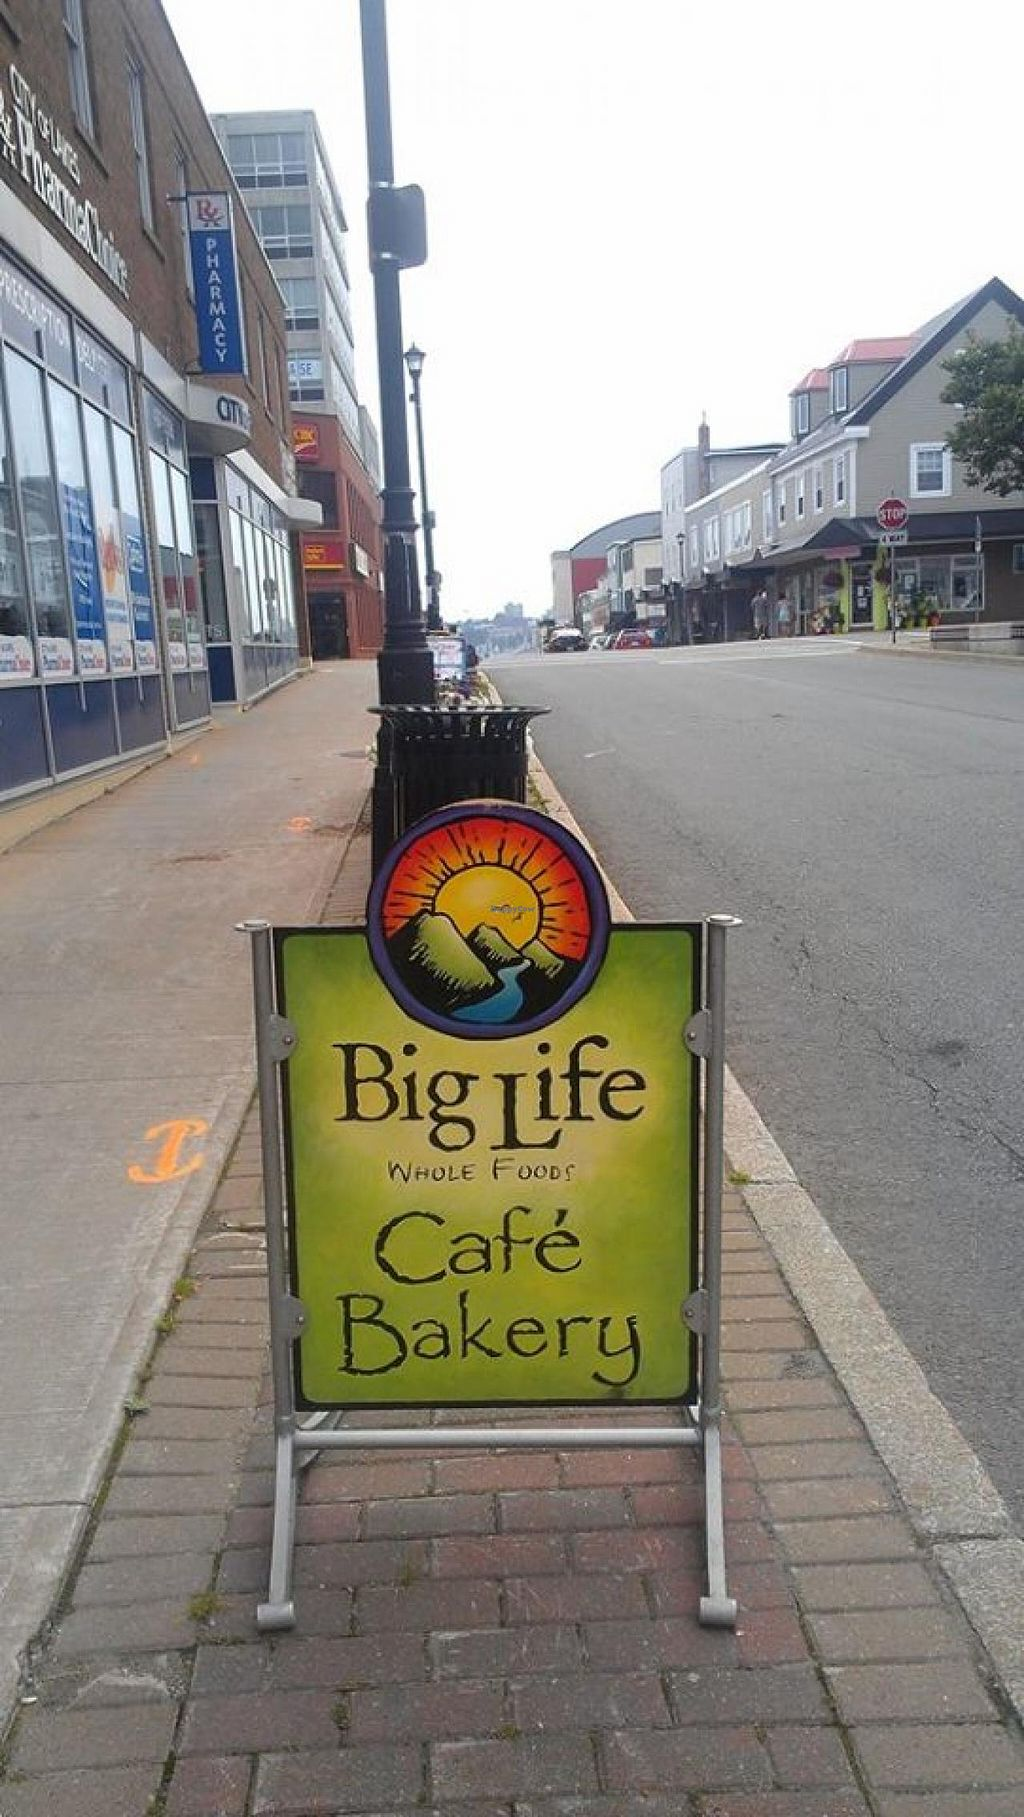 """Photo of Big Life Whole Foods Bakery  by <a href=""""/members/profile/QuothTheRaven"""">QuothTheRaven</a> <br/>Street sign <br/> August 3, 2014  - <a href='/contact/abuse/image/40832/75878'>Report</a>"""